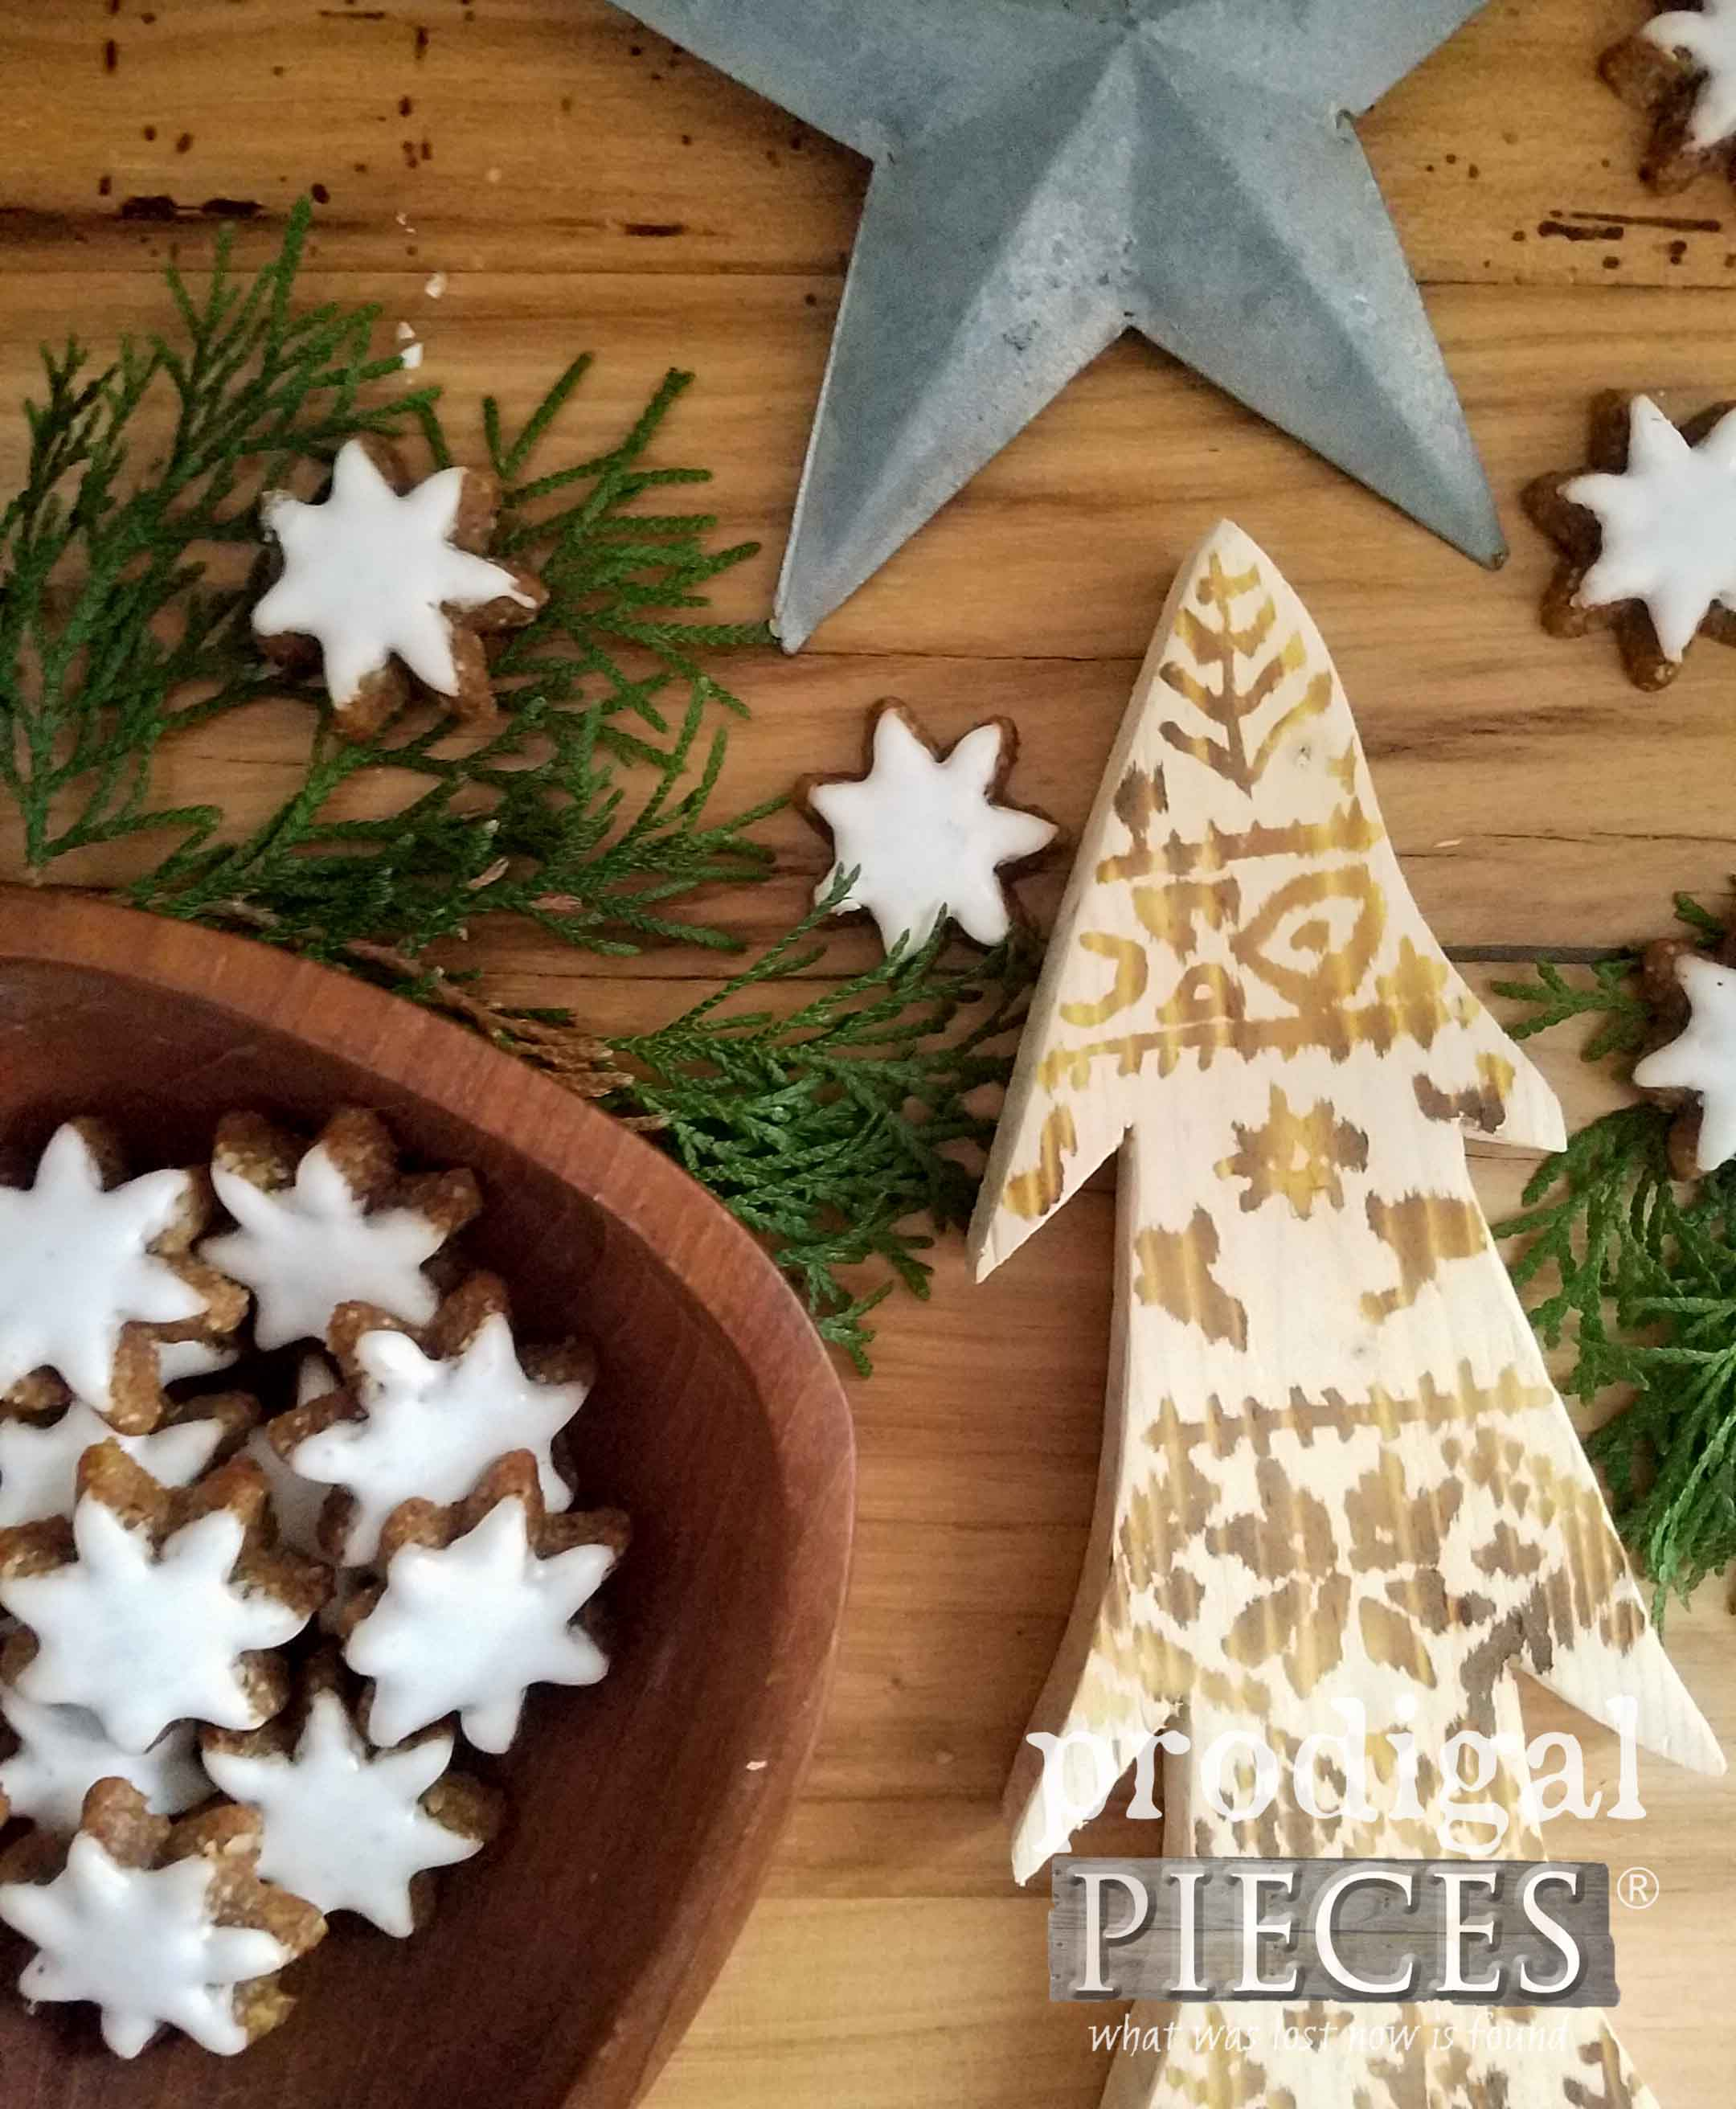 Rustic Nordic Wood Burned Tree using a Heat Gun. DIY tutorial by Larissa of Prodigal Pieces | prodigalpieces.com